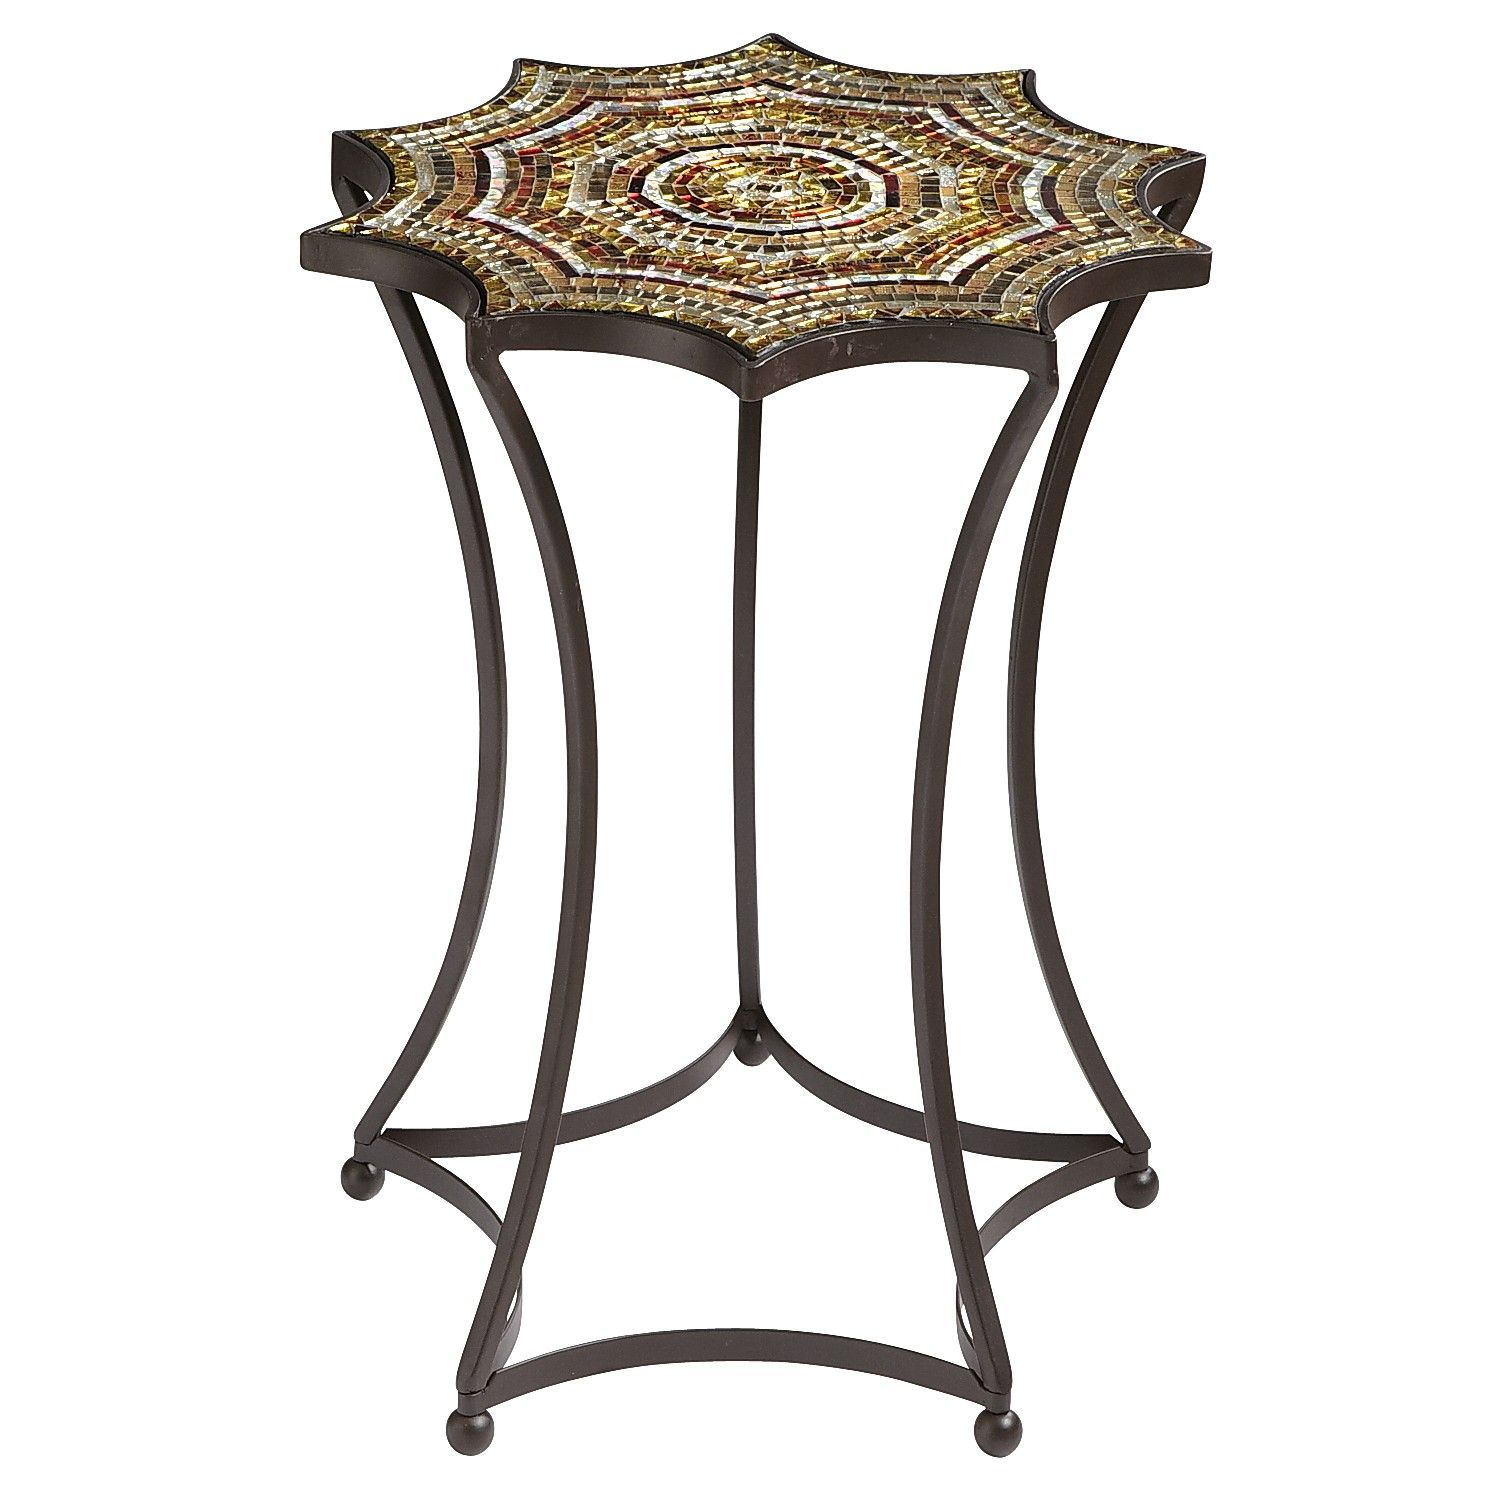 Starburst Mosaic Accent Table | Pier 1 Imports